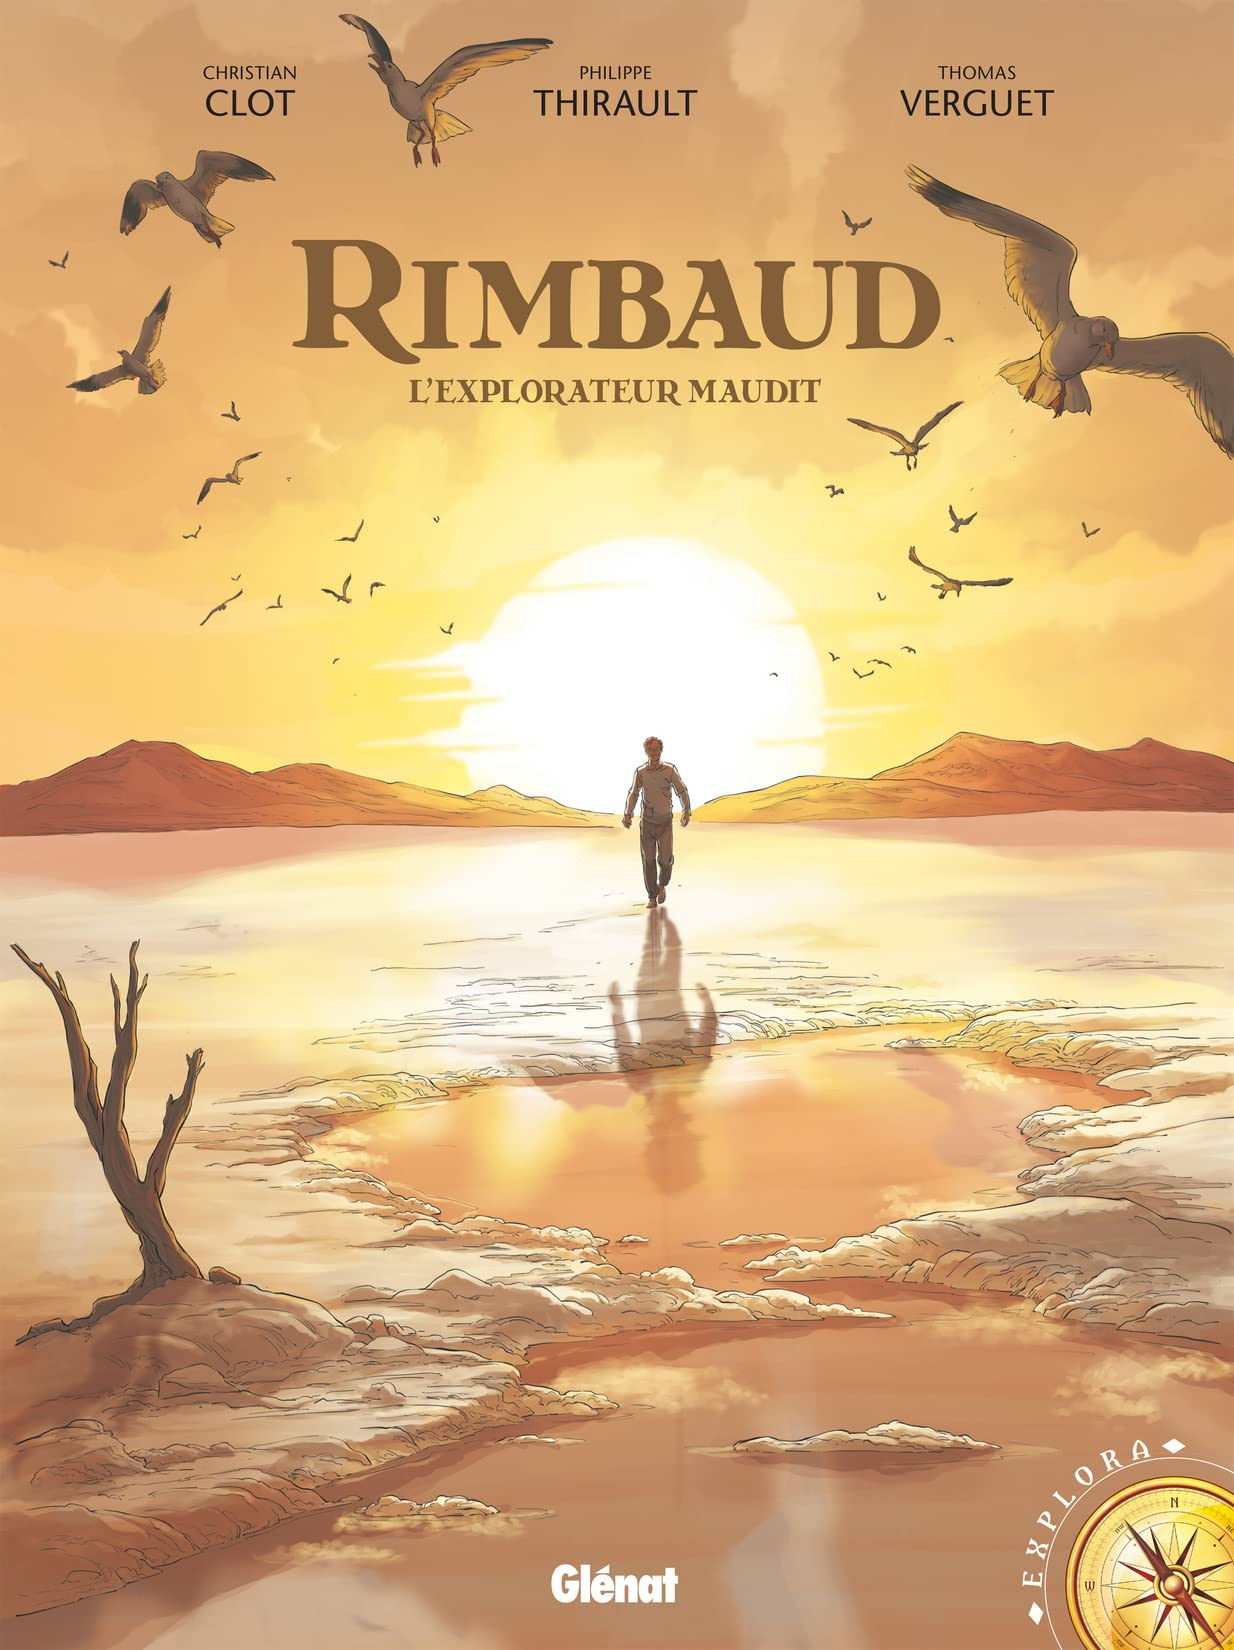 Rimbaud Vol. 1: L'Explorateur maudit